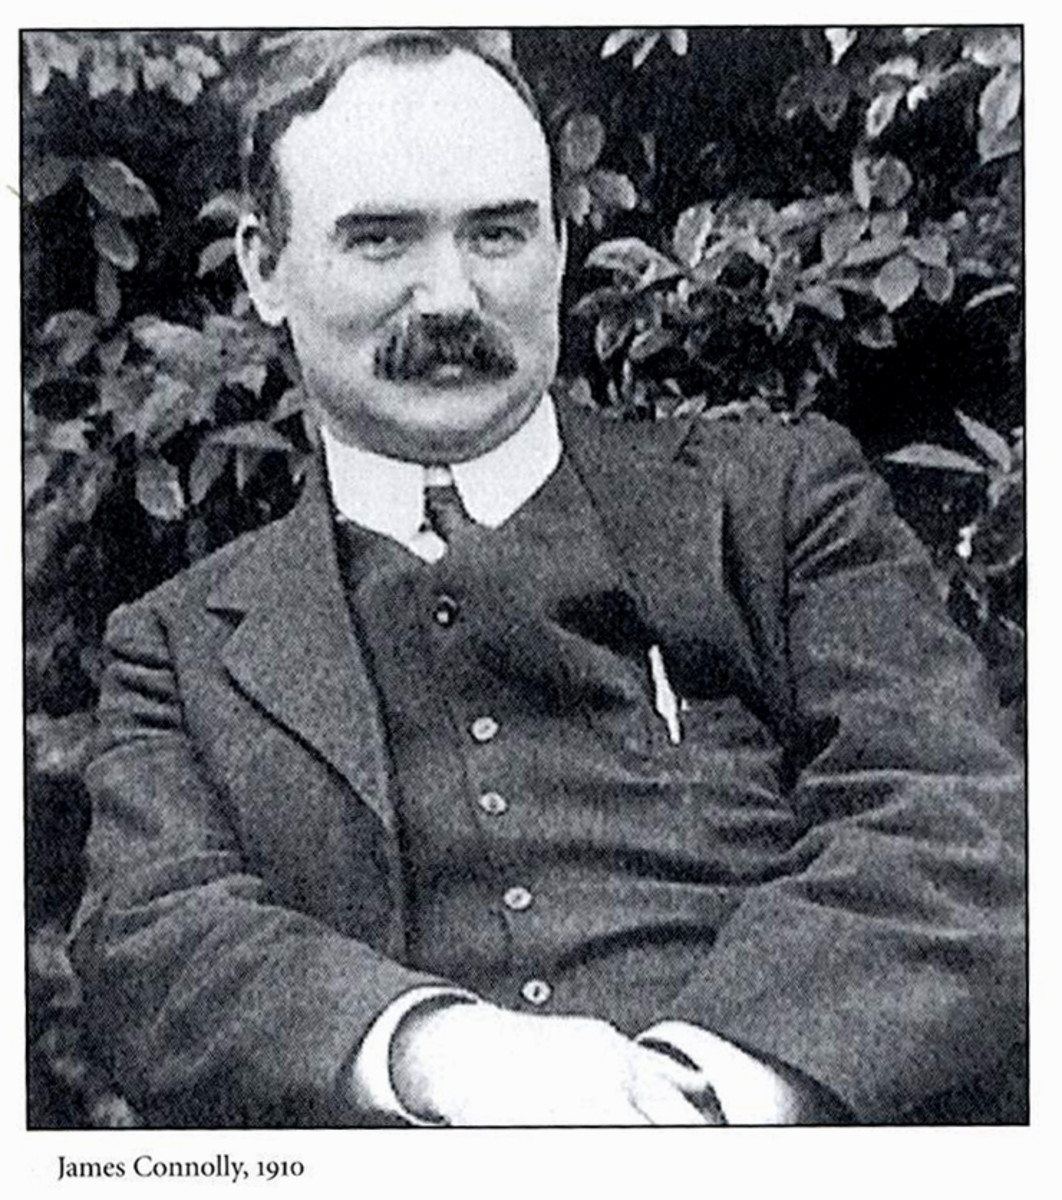 The 1916 Easter Rising in Ireland: James Connolly